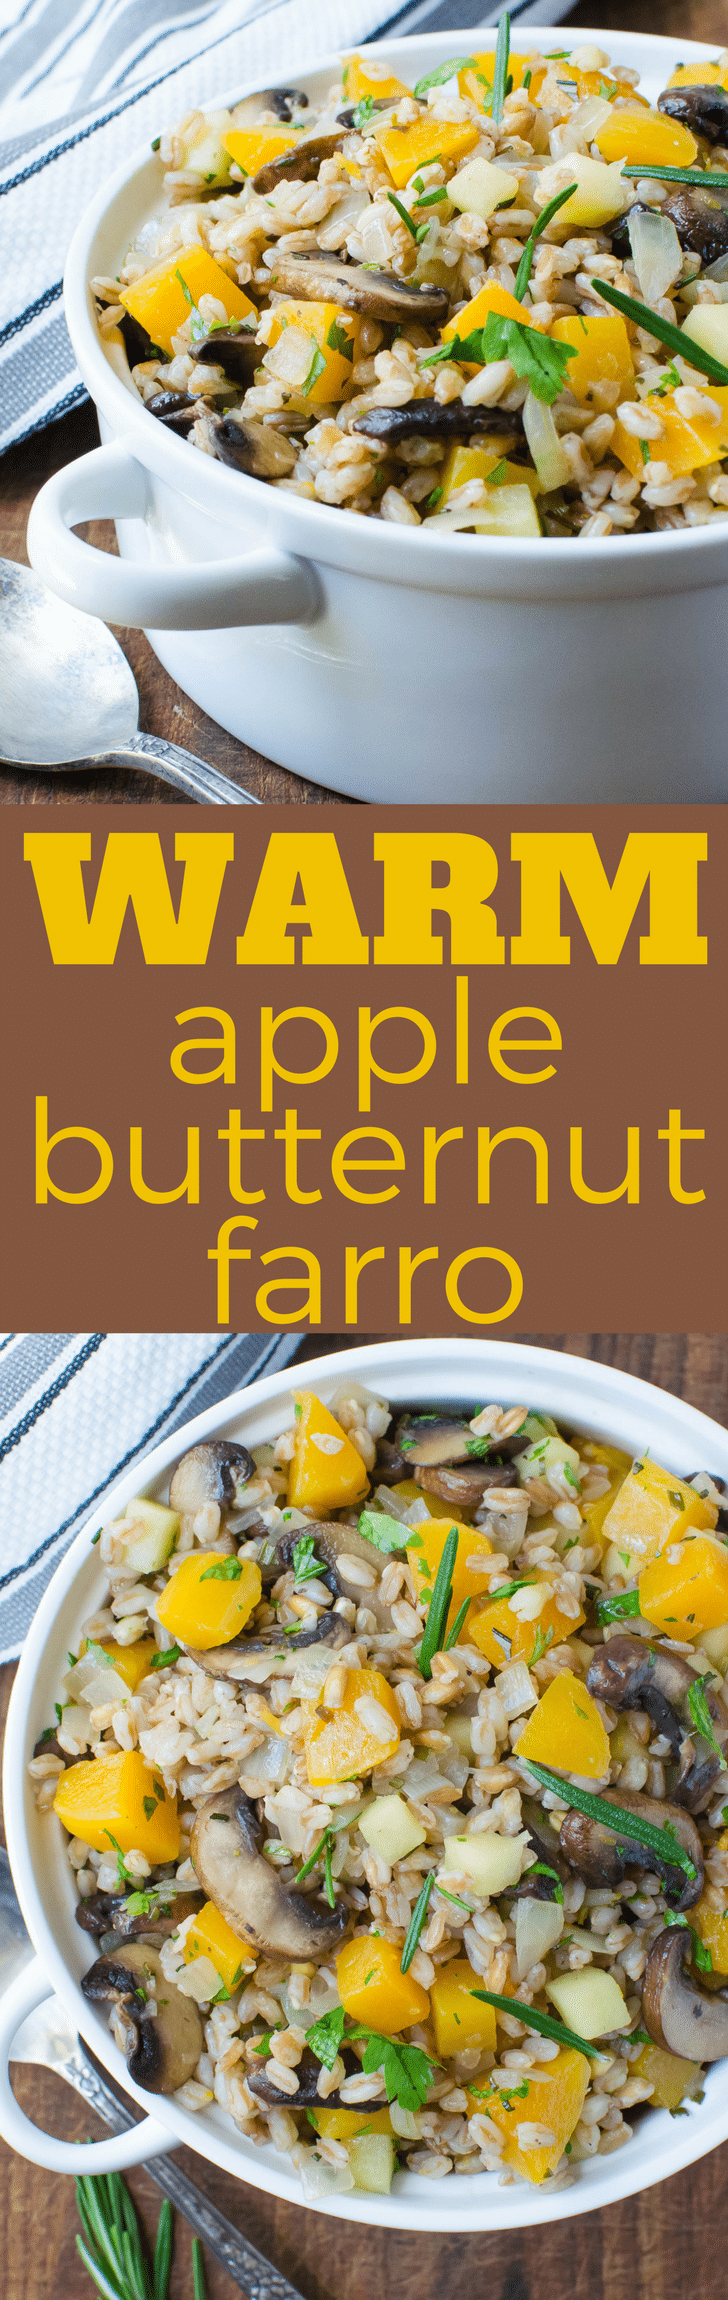 This is the perfect fall or winter side dish! Warm Apple Butternut Farro is easy vegetarian side dish recipe with mushrooms, butternut squash, apples and farro, a healthy ancient grain. A whole cinnamon stick lends a warm, cozy scent and flavor. #sidedish #easysidedish #wholegrains #wholegrainsidedish #pilaf #butternutsquash, #mushrooms #apples #cinnamon #rosemary #vegetarian #farro #ancientgrains #grains #farrorecipe #butternutsquashrecipe #pilafrecipe